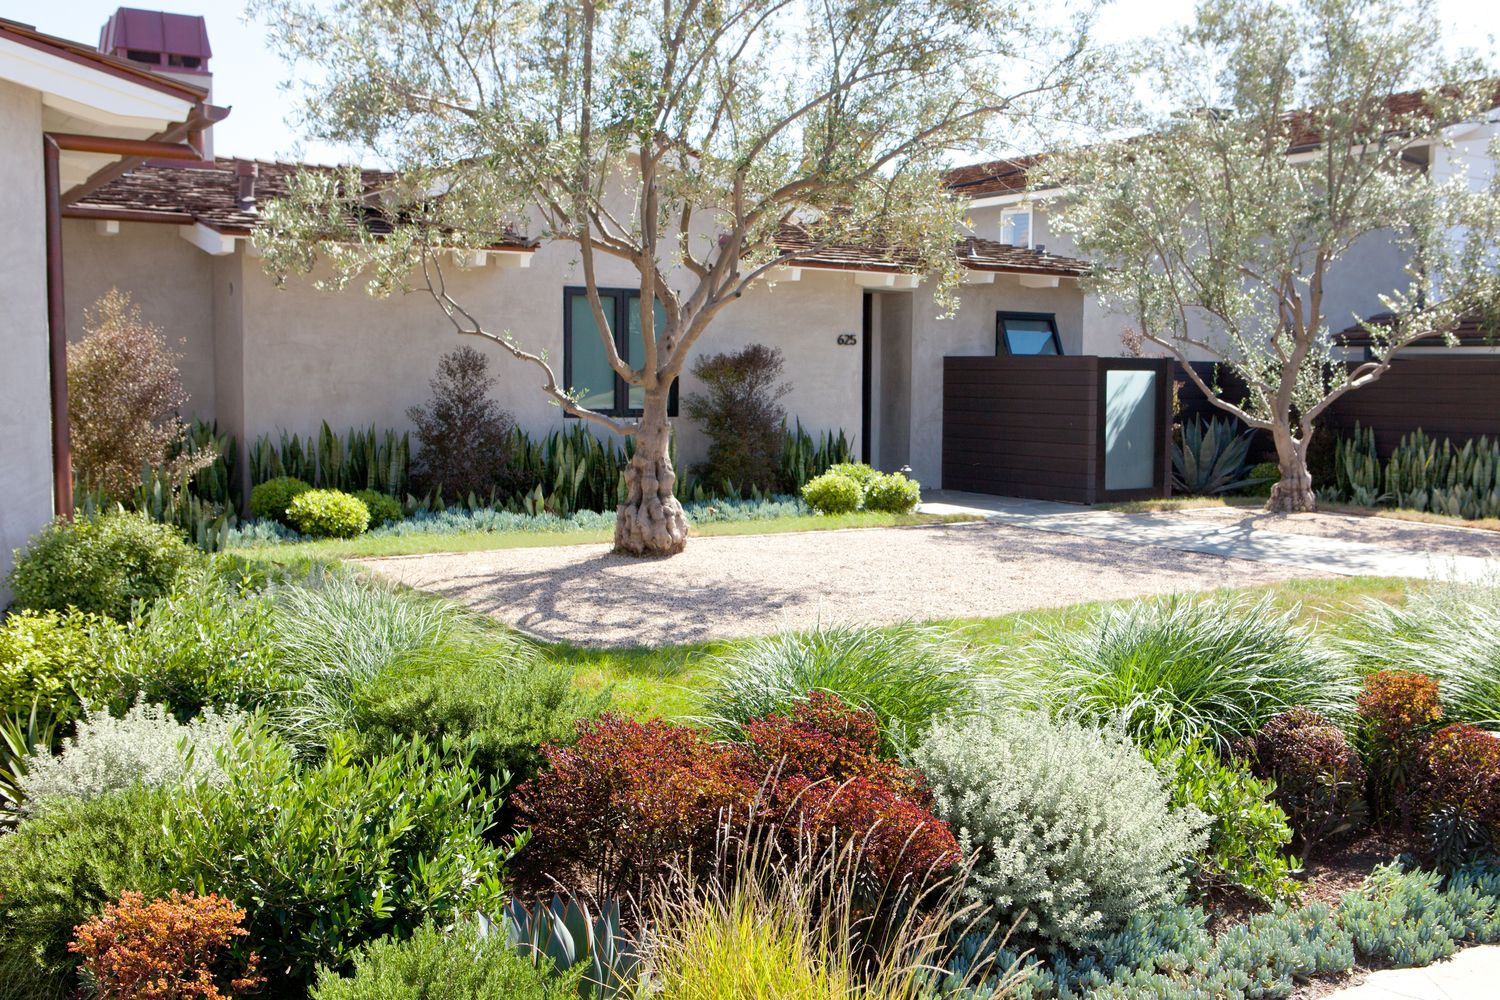 California Landscape Lush With Less Water Www Mollywoodgardendesign Com Garden In The Woods Landscape Design Garden Landscape Design